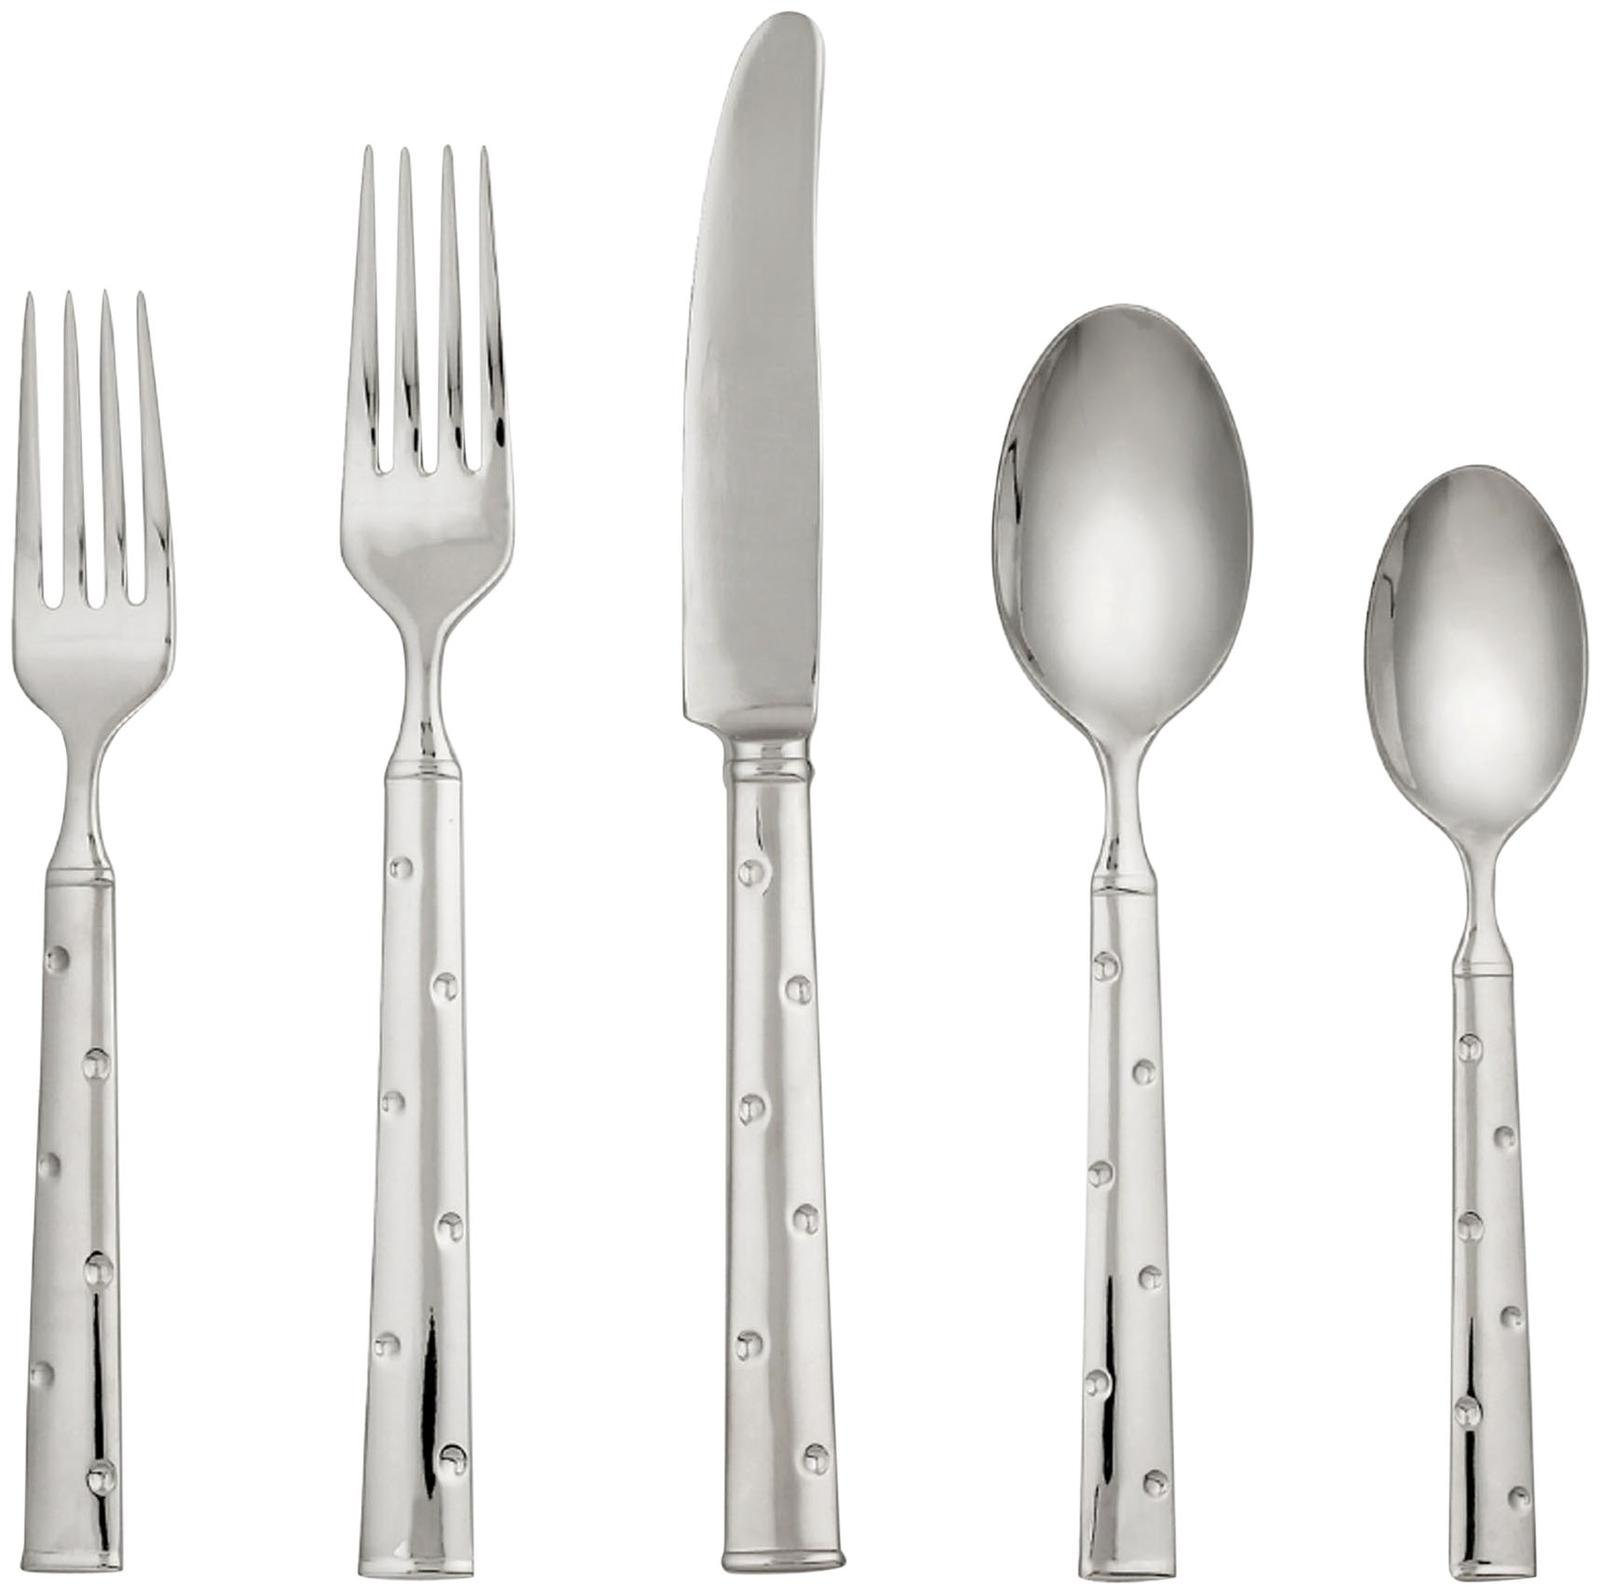 Kate Spade New York 6307441 Larabee Dot 5 Piece Flatware Set, Silver - Crafted of 18/10 Stainless Steel Includes Dinner Fork, Dinner Knife, Salad Fork, Dinner Spoon and Teaspoon Dishwasher Safe - kitchen-tabletop, kitchen-dining-room, flatware - 61YE0VhxijL -